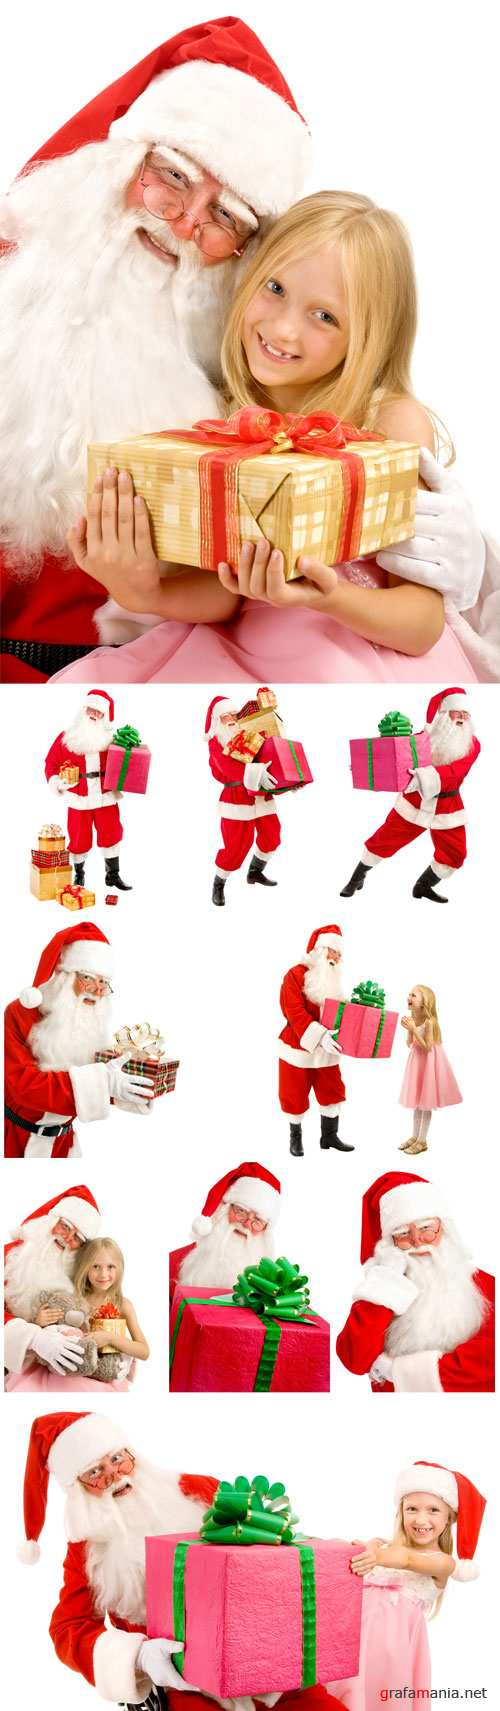 Santa Claus with a little girl, Christmas gifts - Stock photo